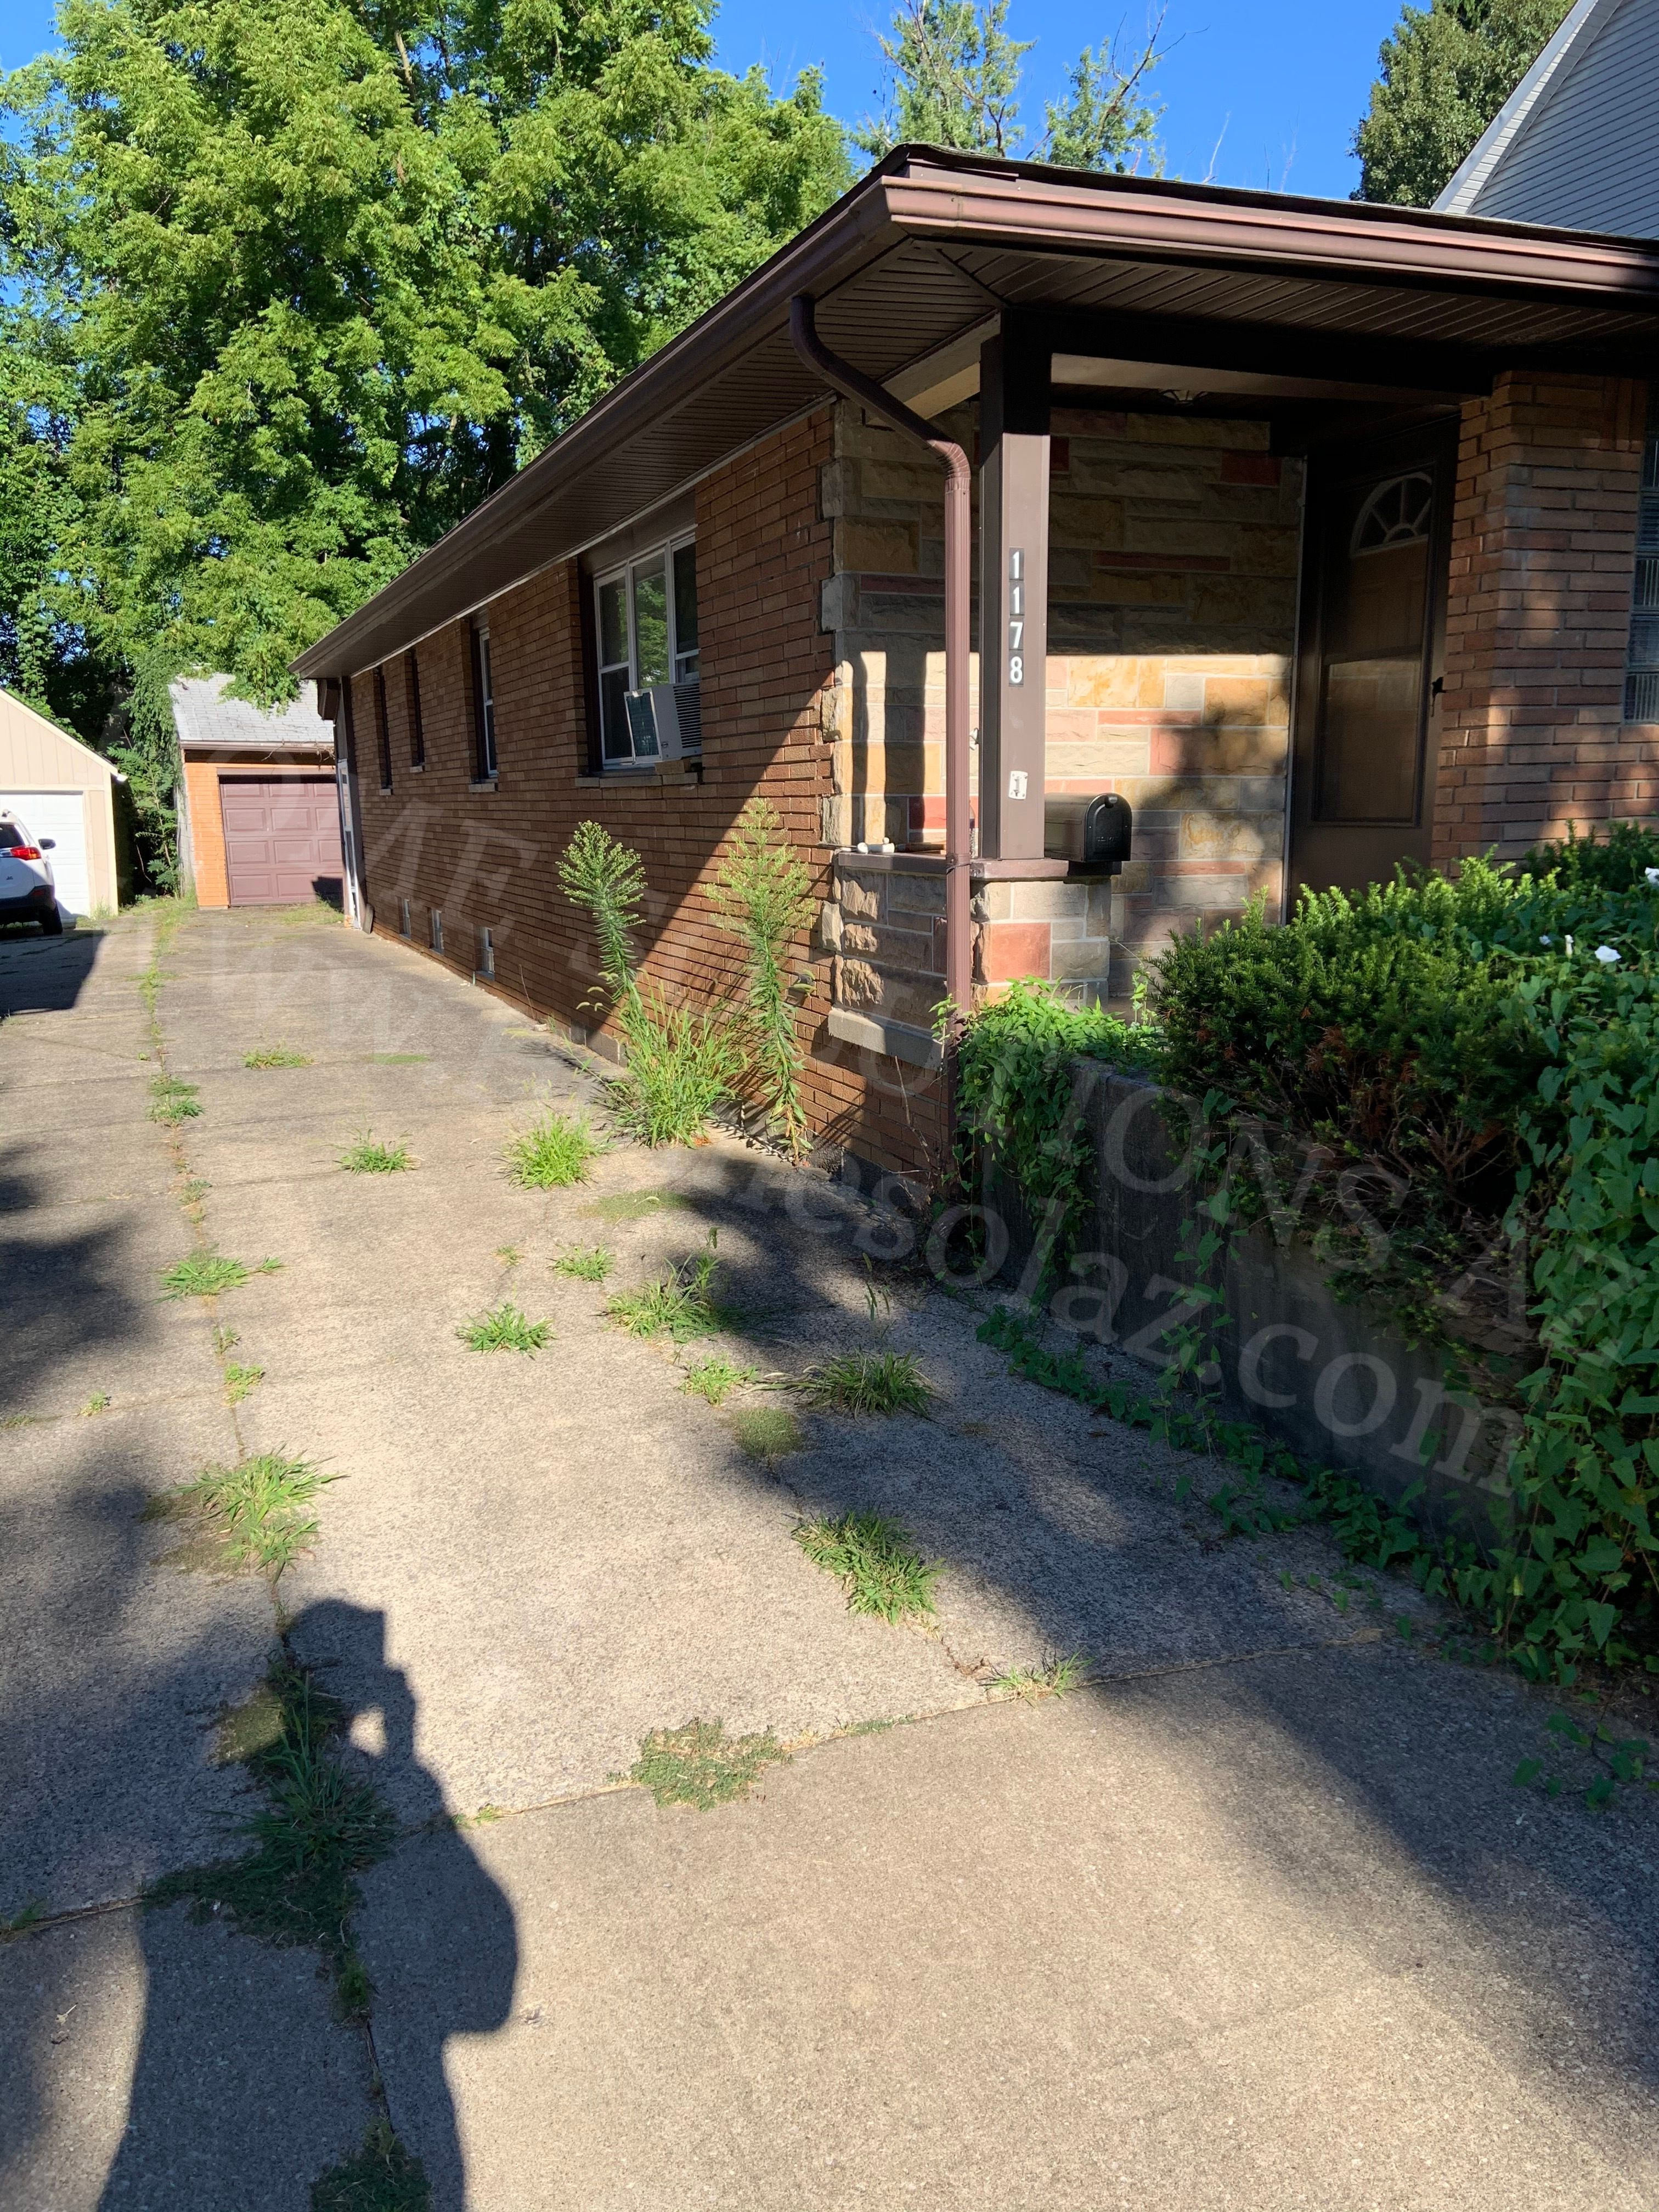 1178 Collinwood Ave (Image - 2)